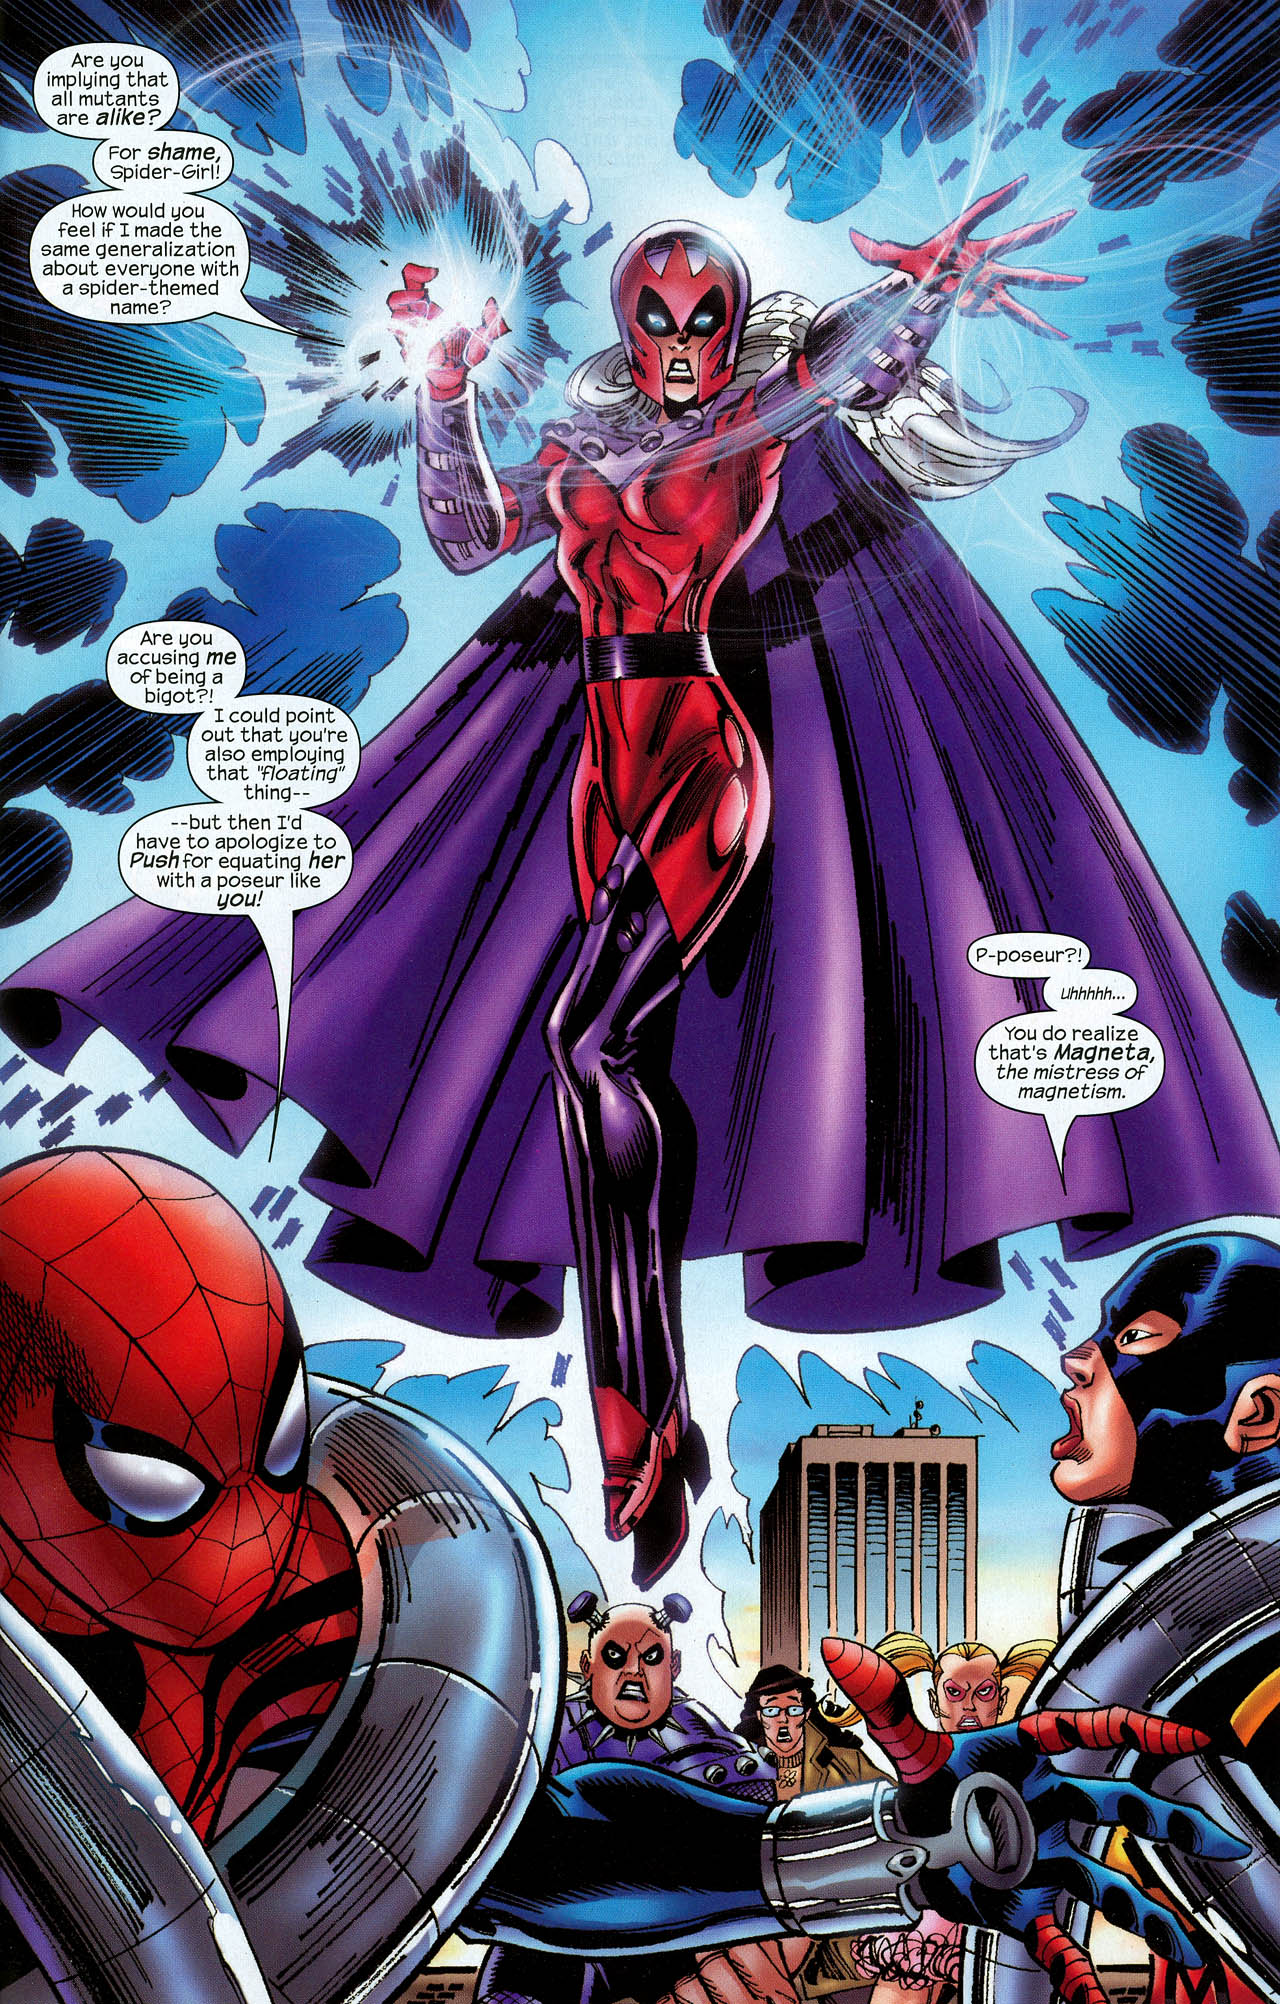 Read online Amazing Spider-Girl comic -  Issue #22 - 25